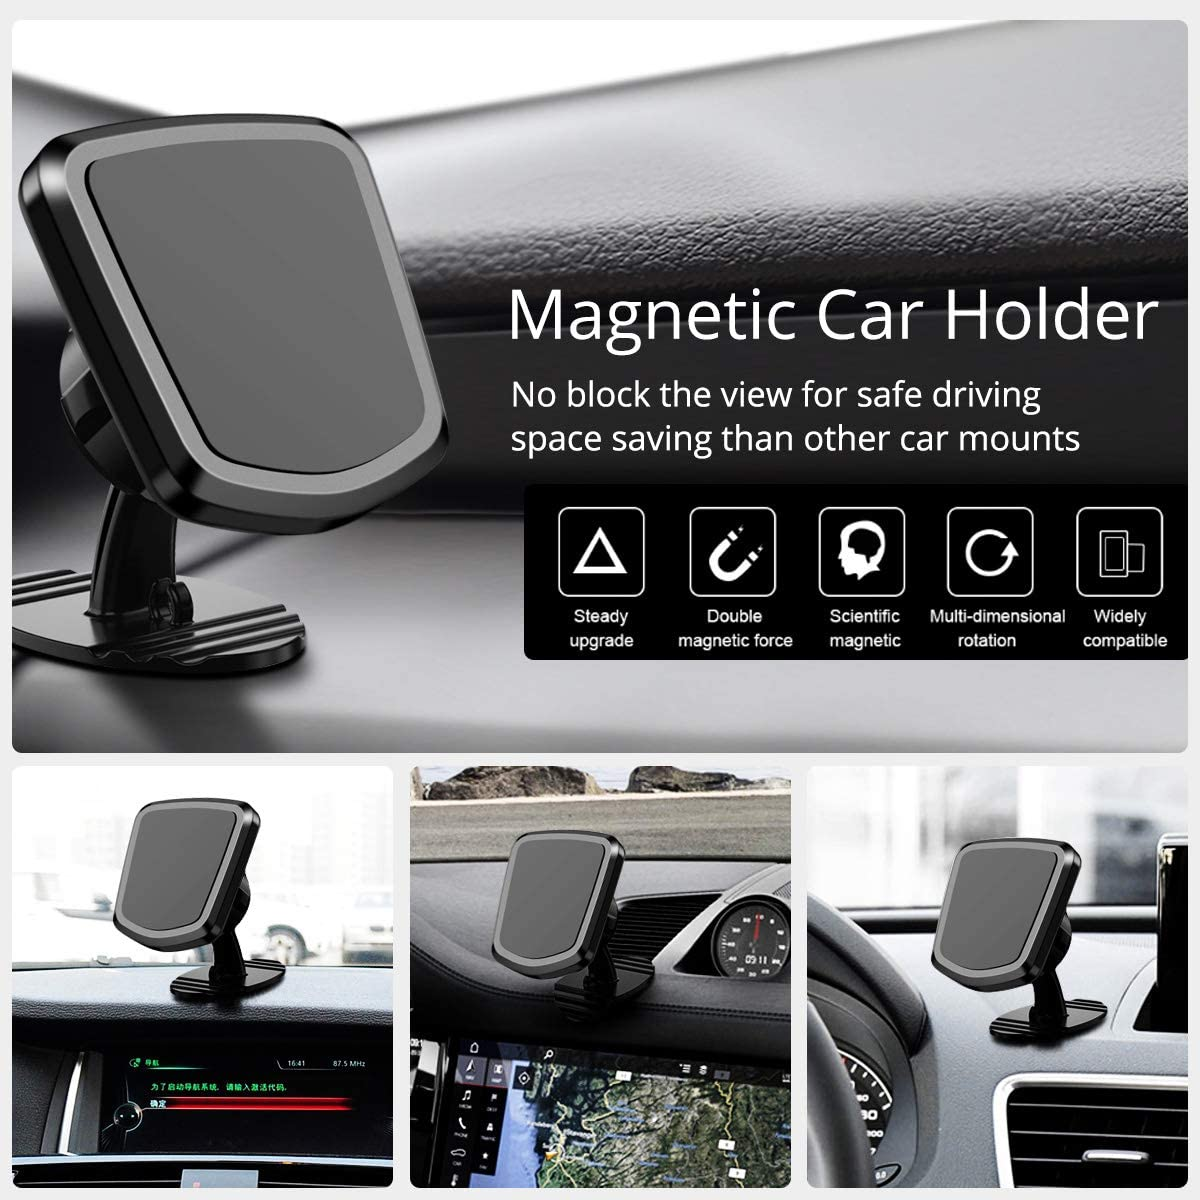 FONKEN Smartphone Car Air Vent Mount Holder 2-Pack 360/°Rotate Universal Stick-On Dashboard Cell Phone Holder Magnet Car Phone Mount Compatible iPhone 11 Xs XR Samsung S9 S8 Magnetic Phone Car Mount